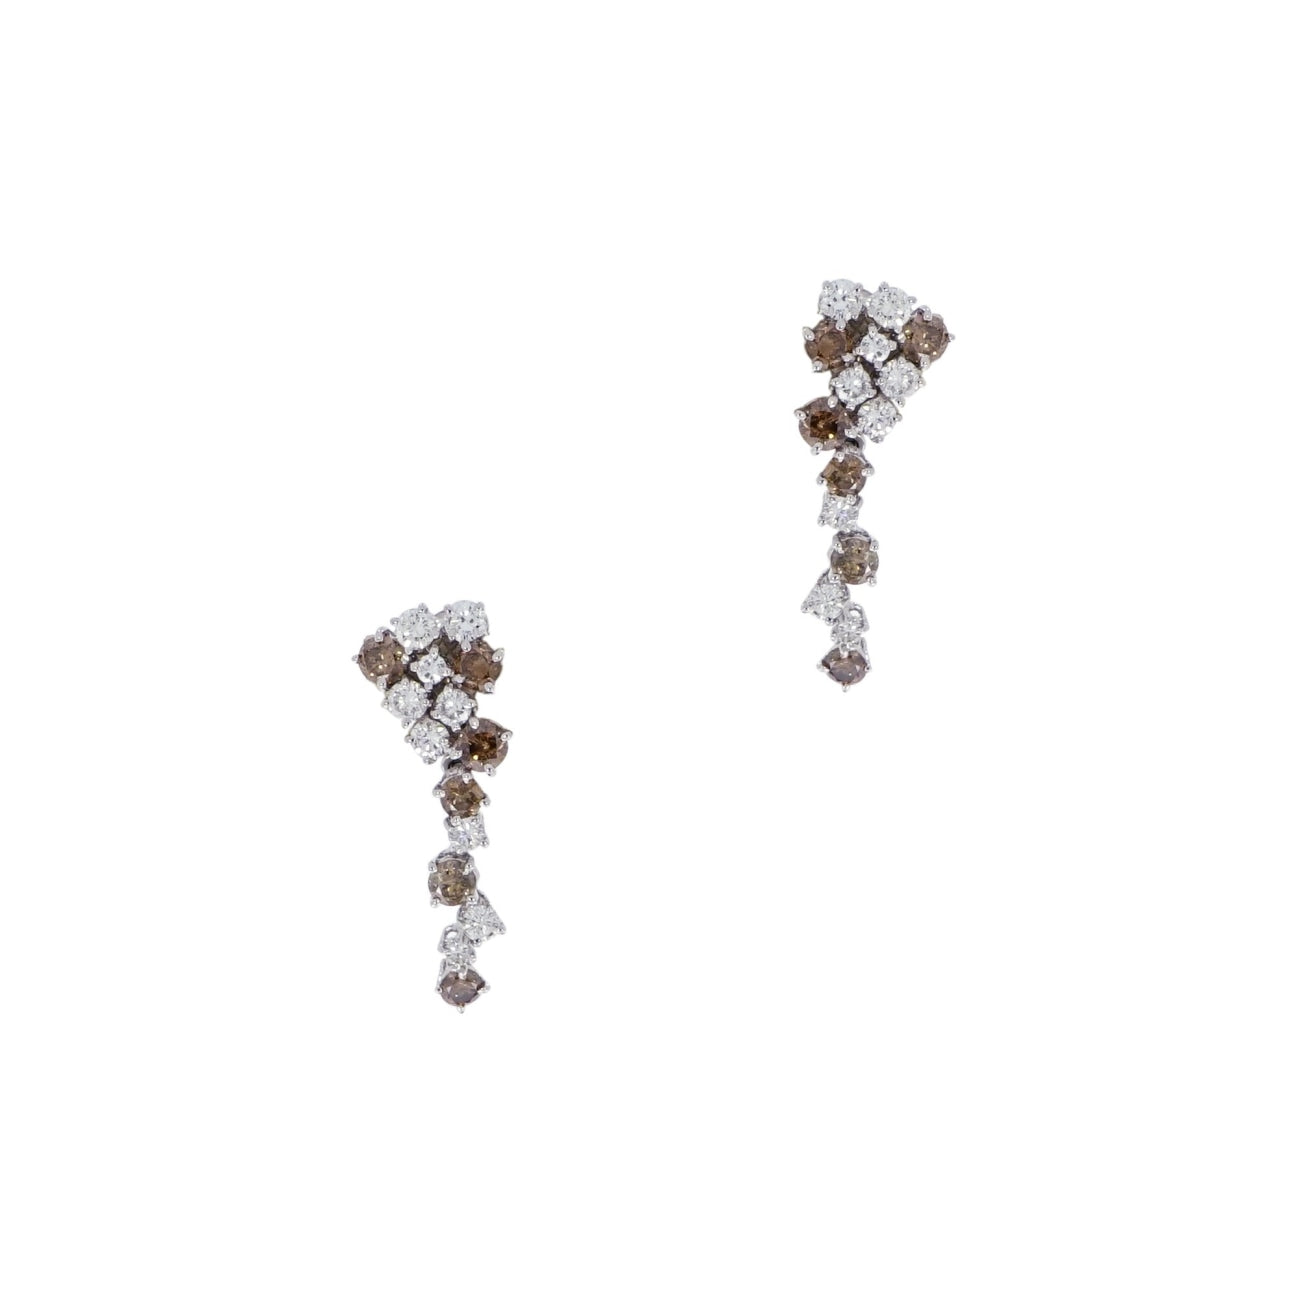 Estate Jewelry Estate Jewelry - White and Cognac Diamonds White Gold Drop Earrings | Manfredi Jewels